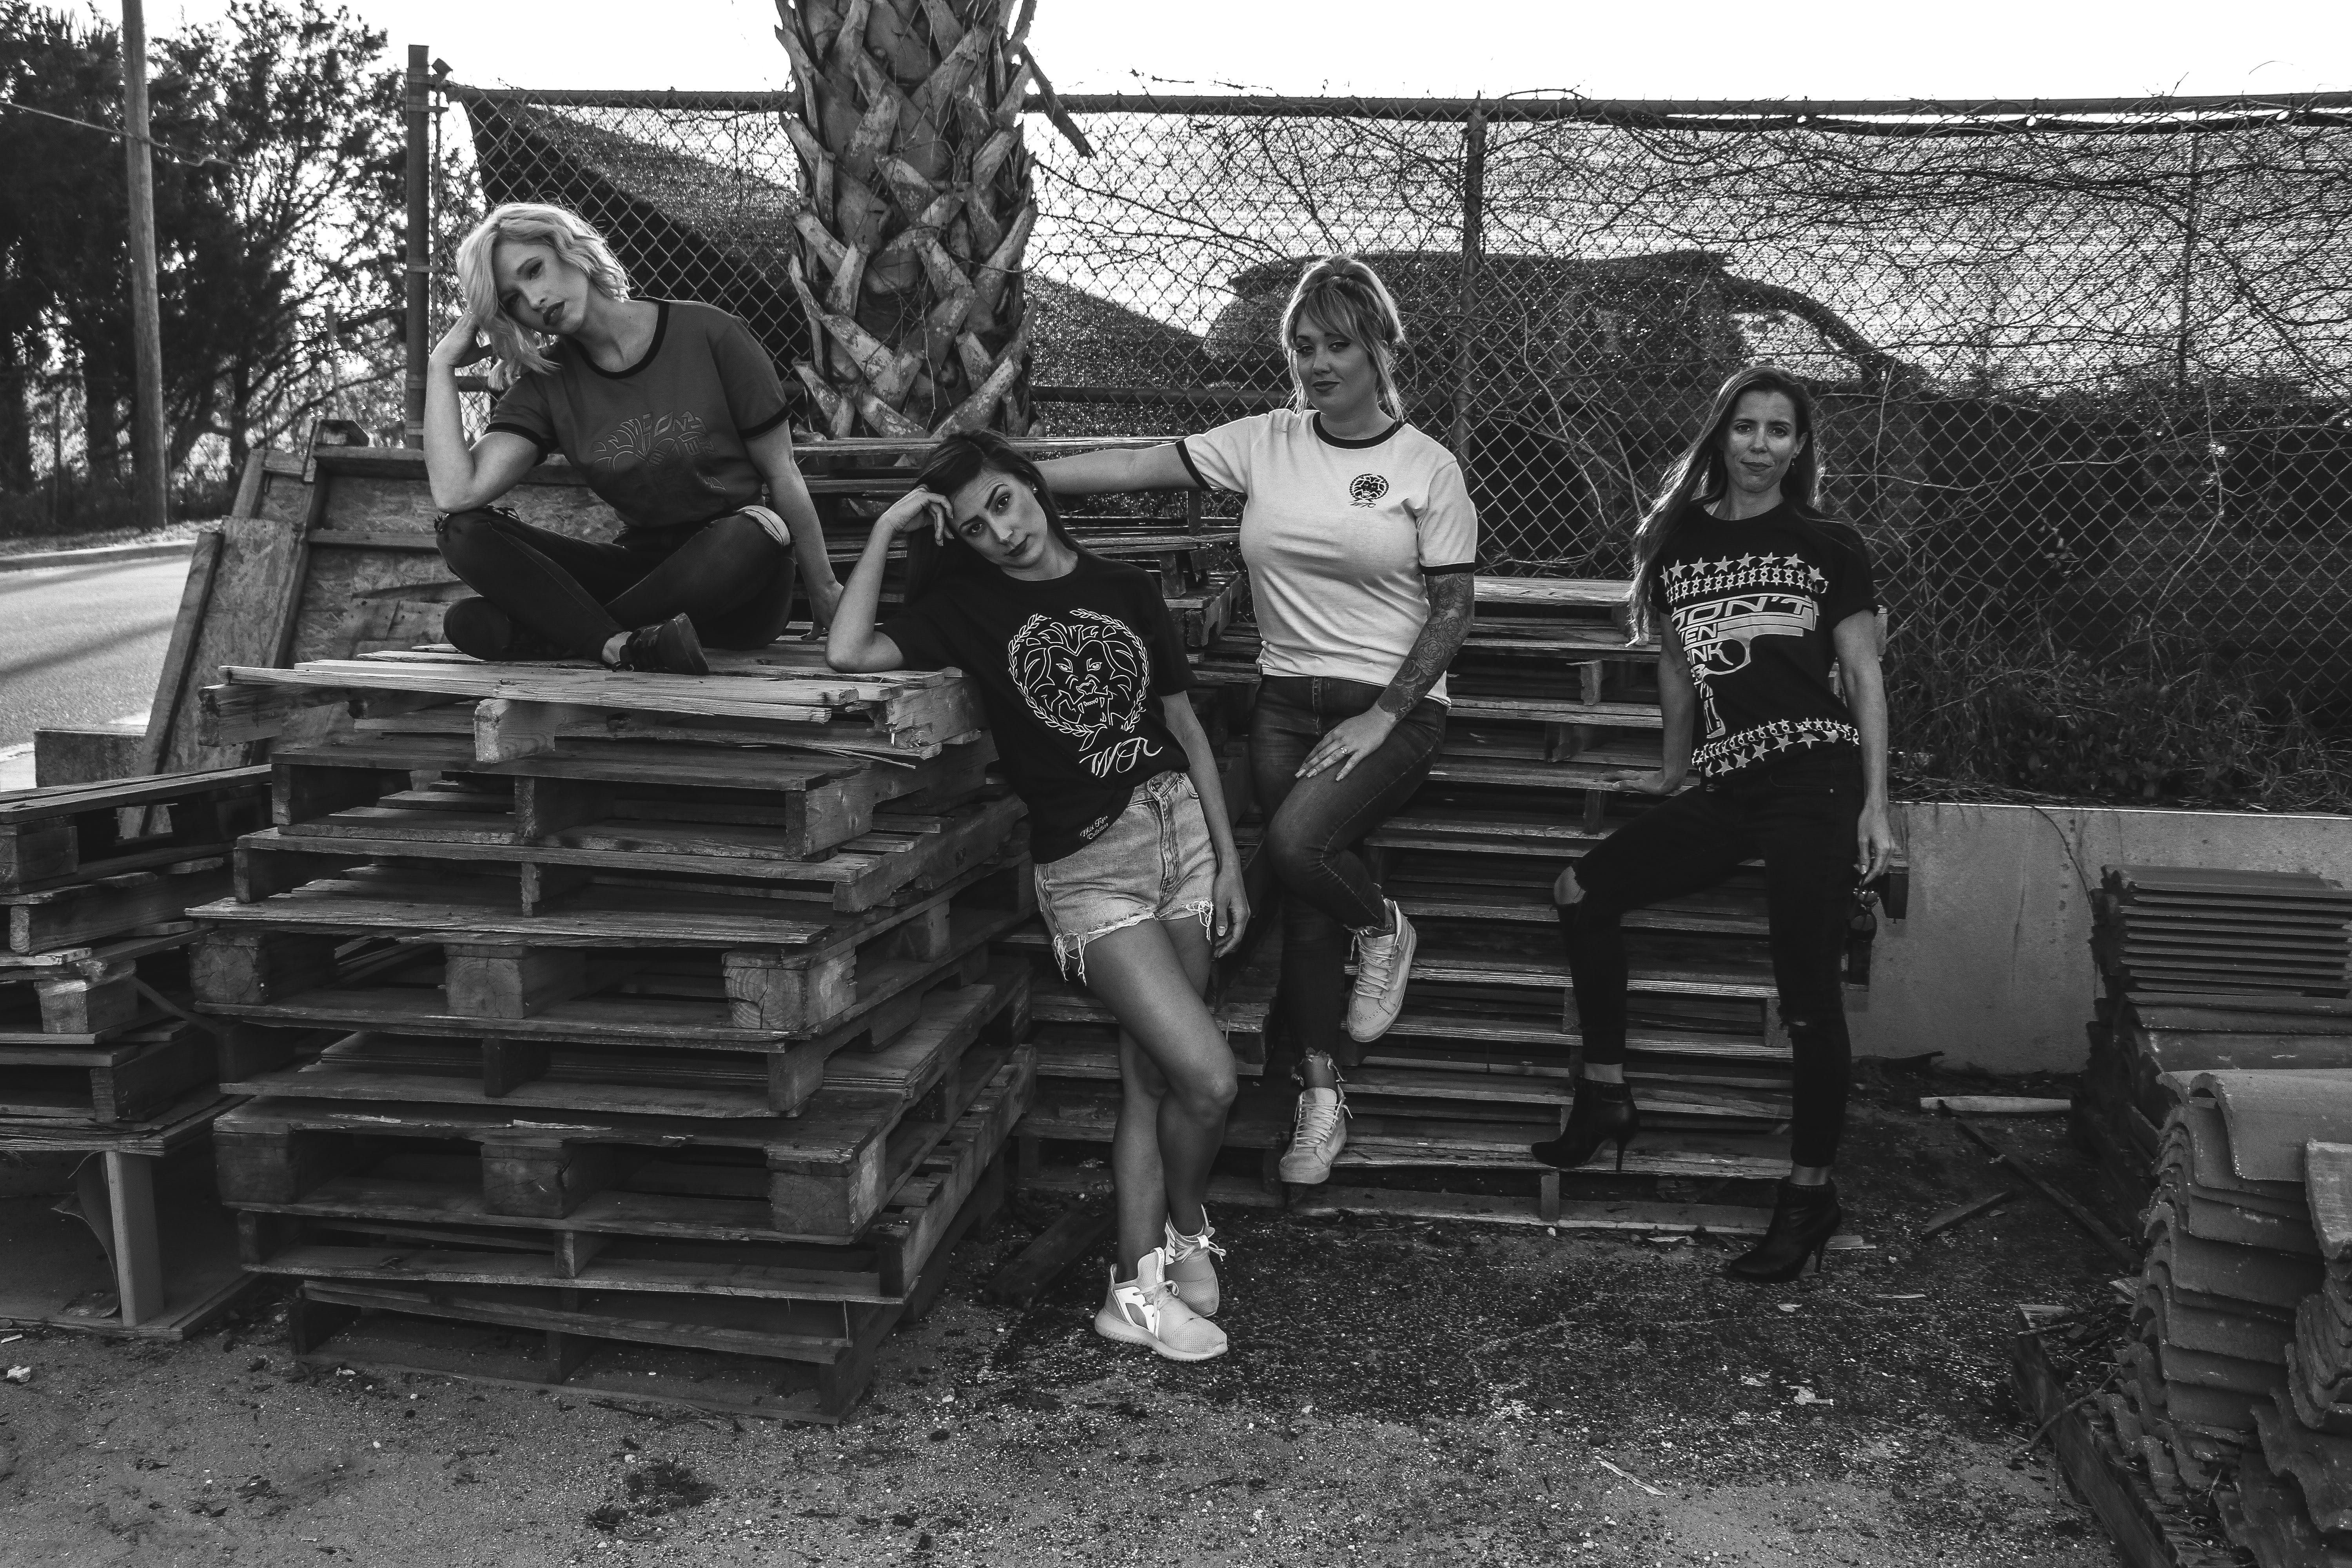 Four Women Leaning and Sitting on Pallets